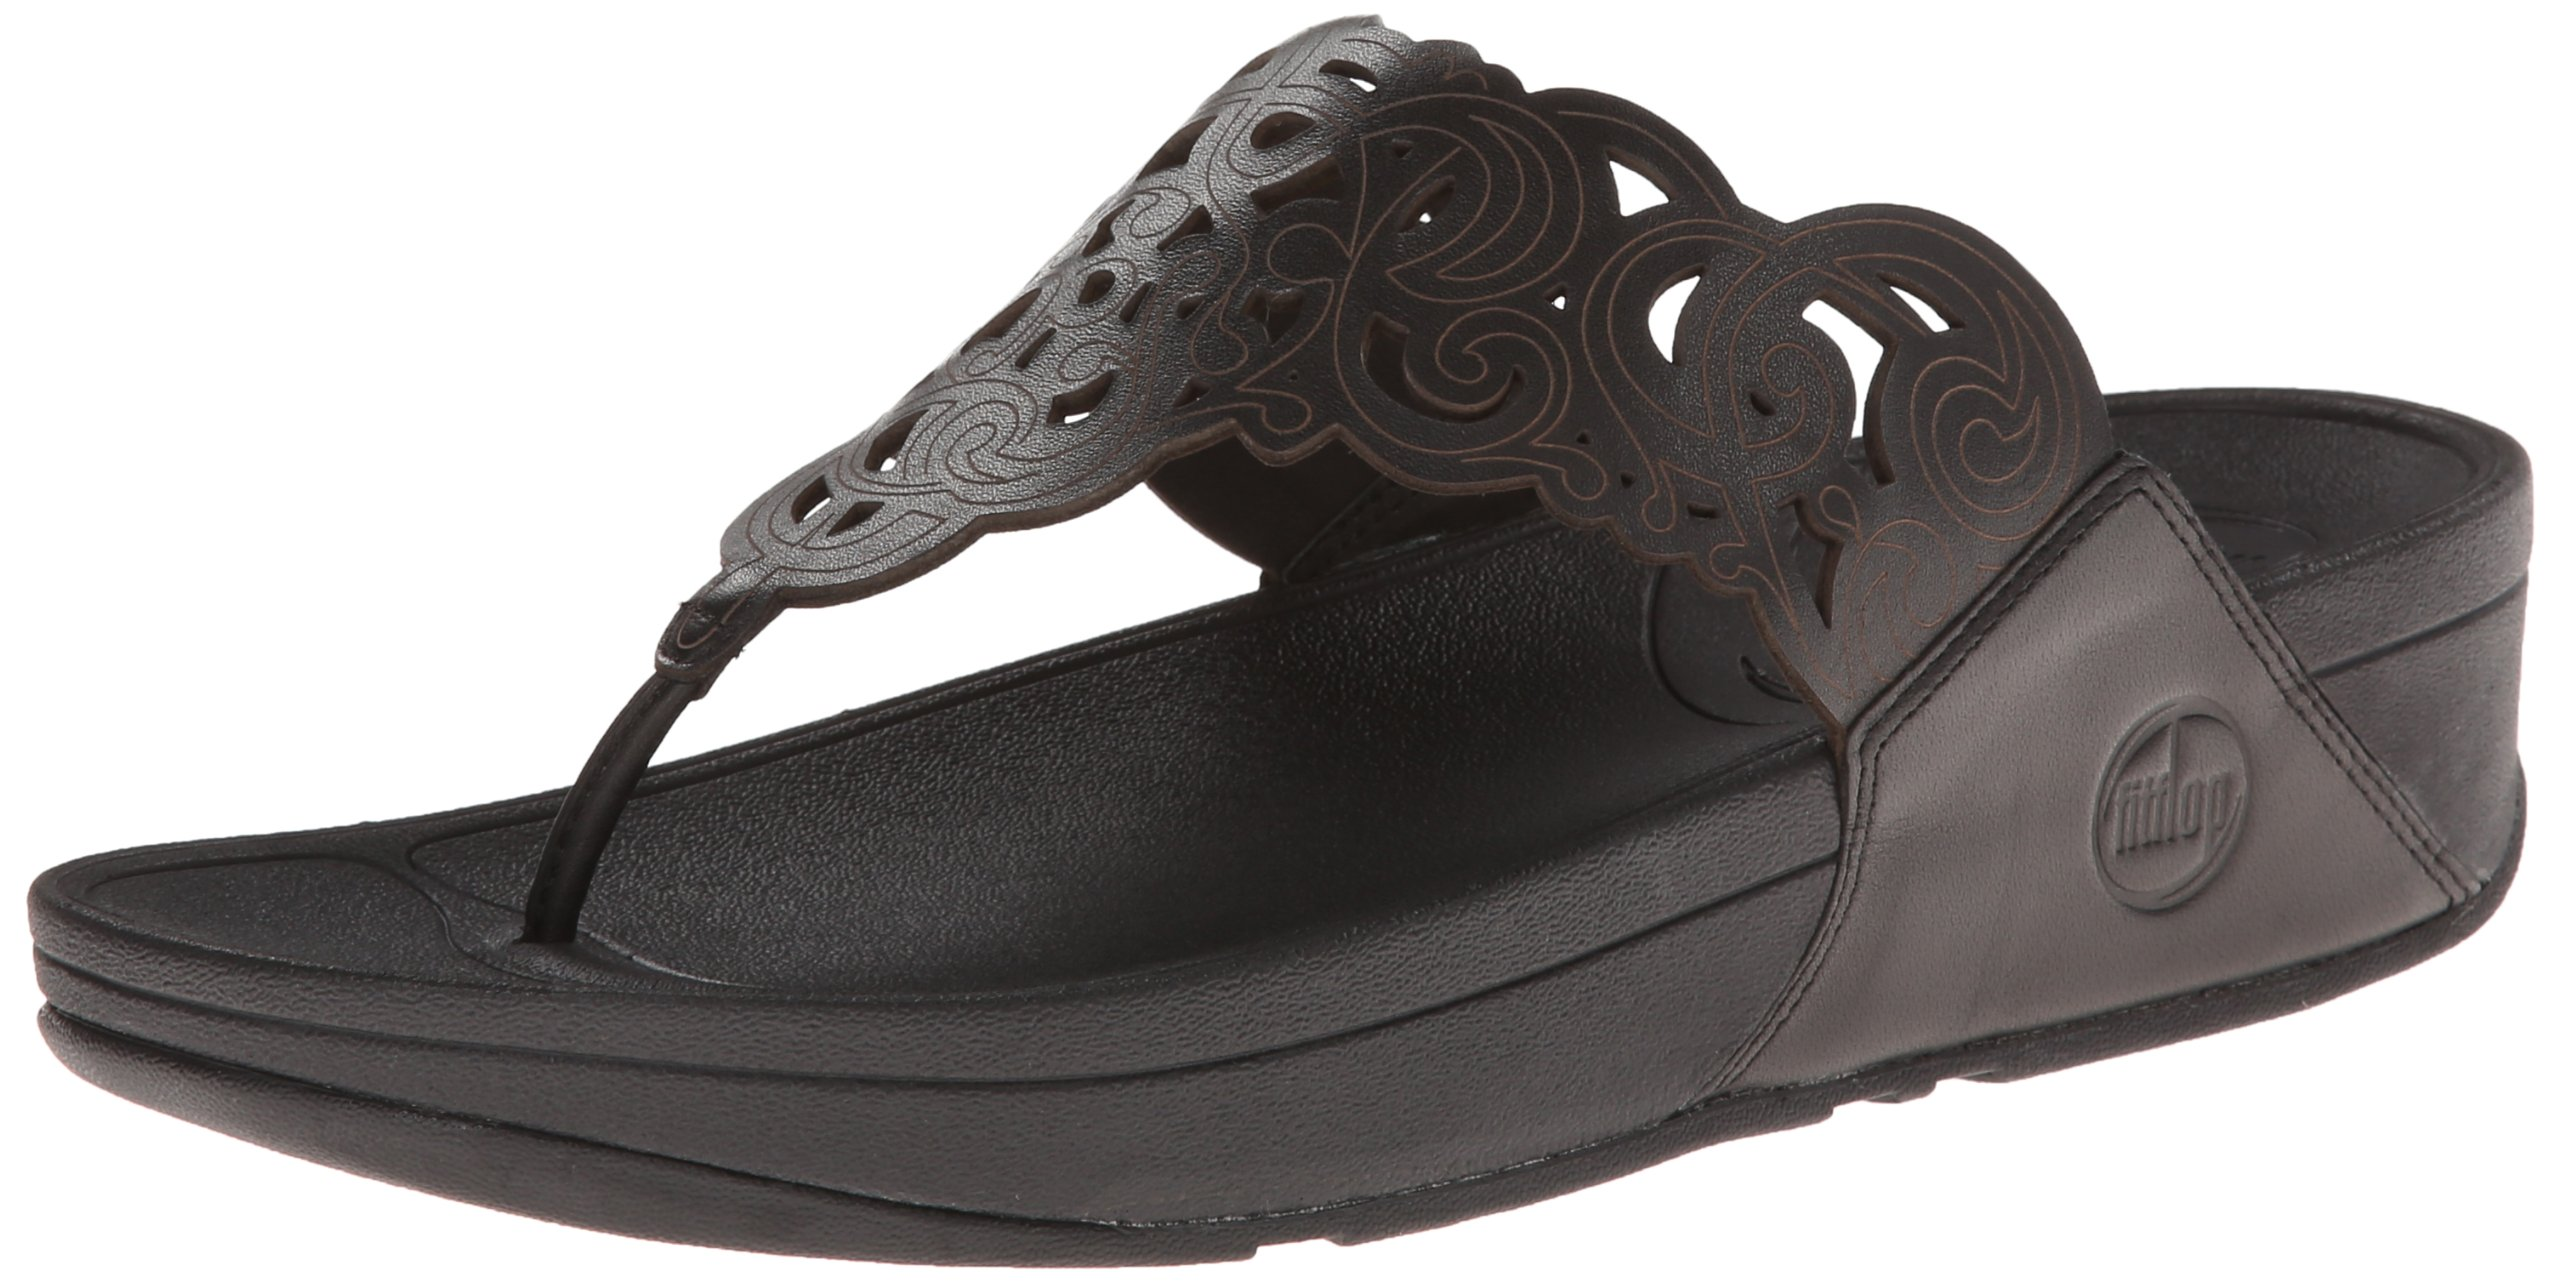 FITFLOP Women's Flora, Black, 8 M (B) by FITFLOP